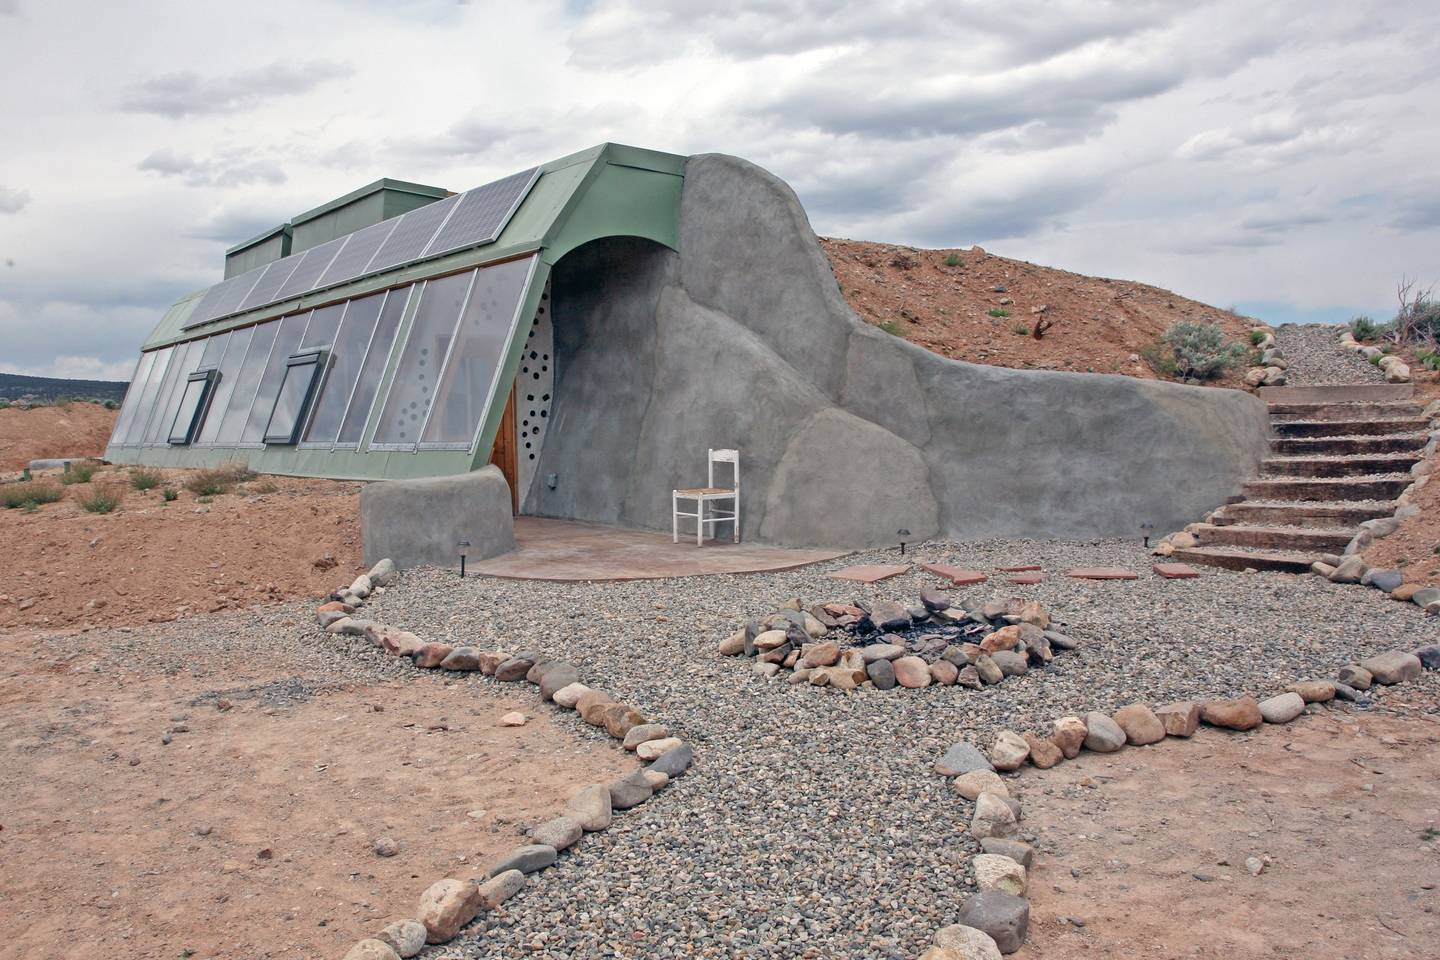 Off the grid spaceship house